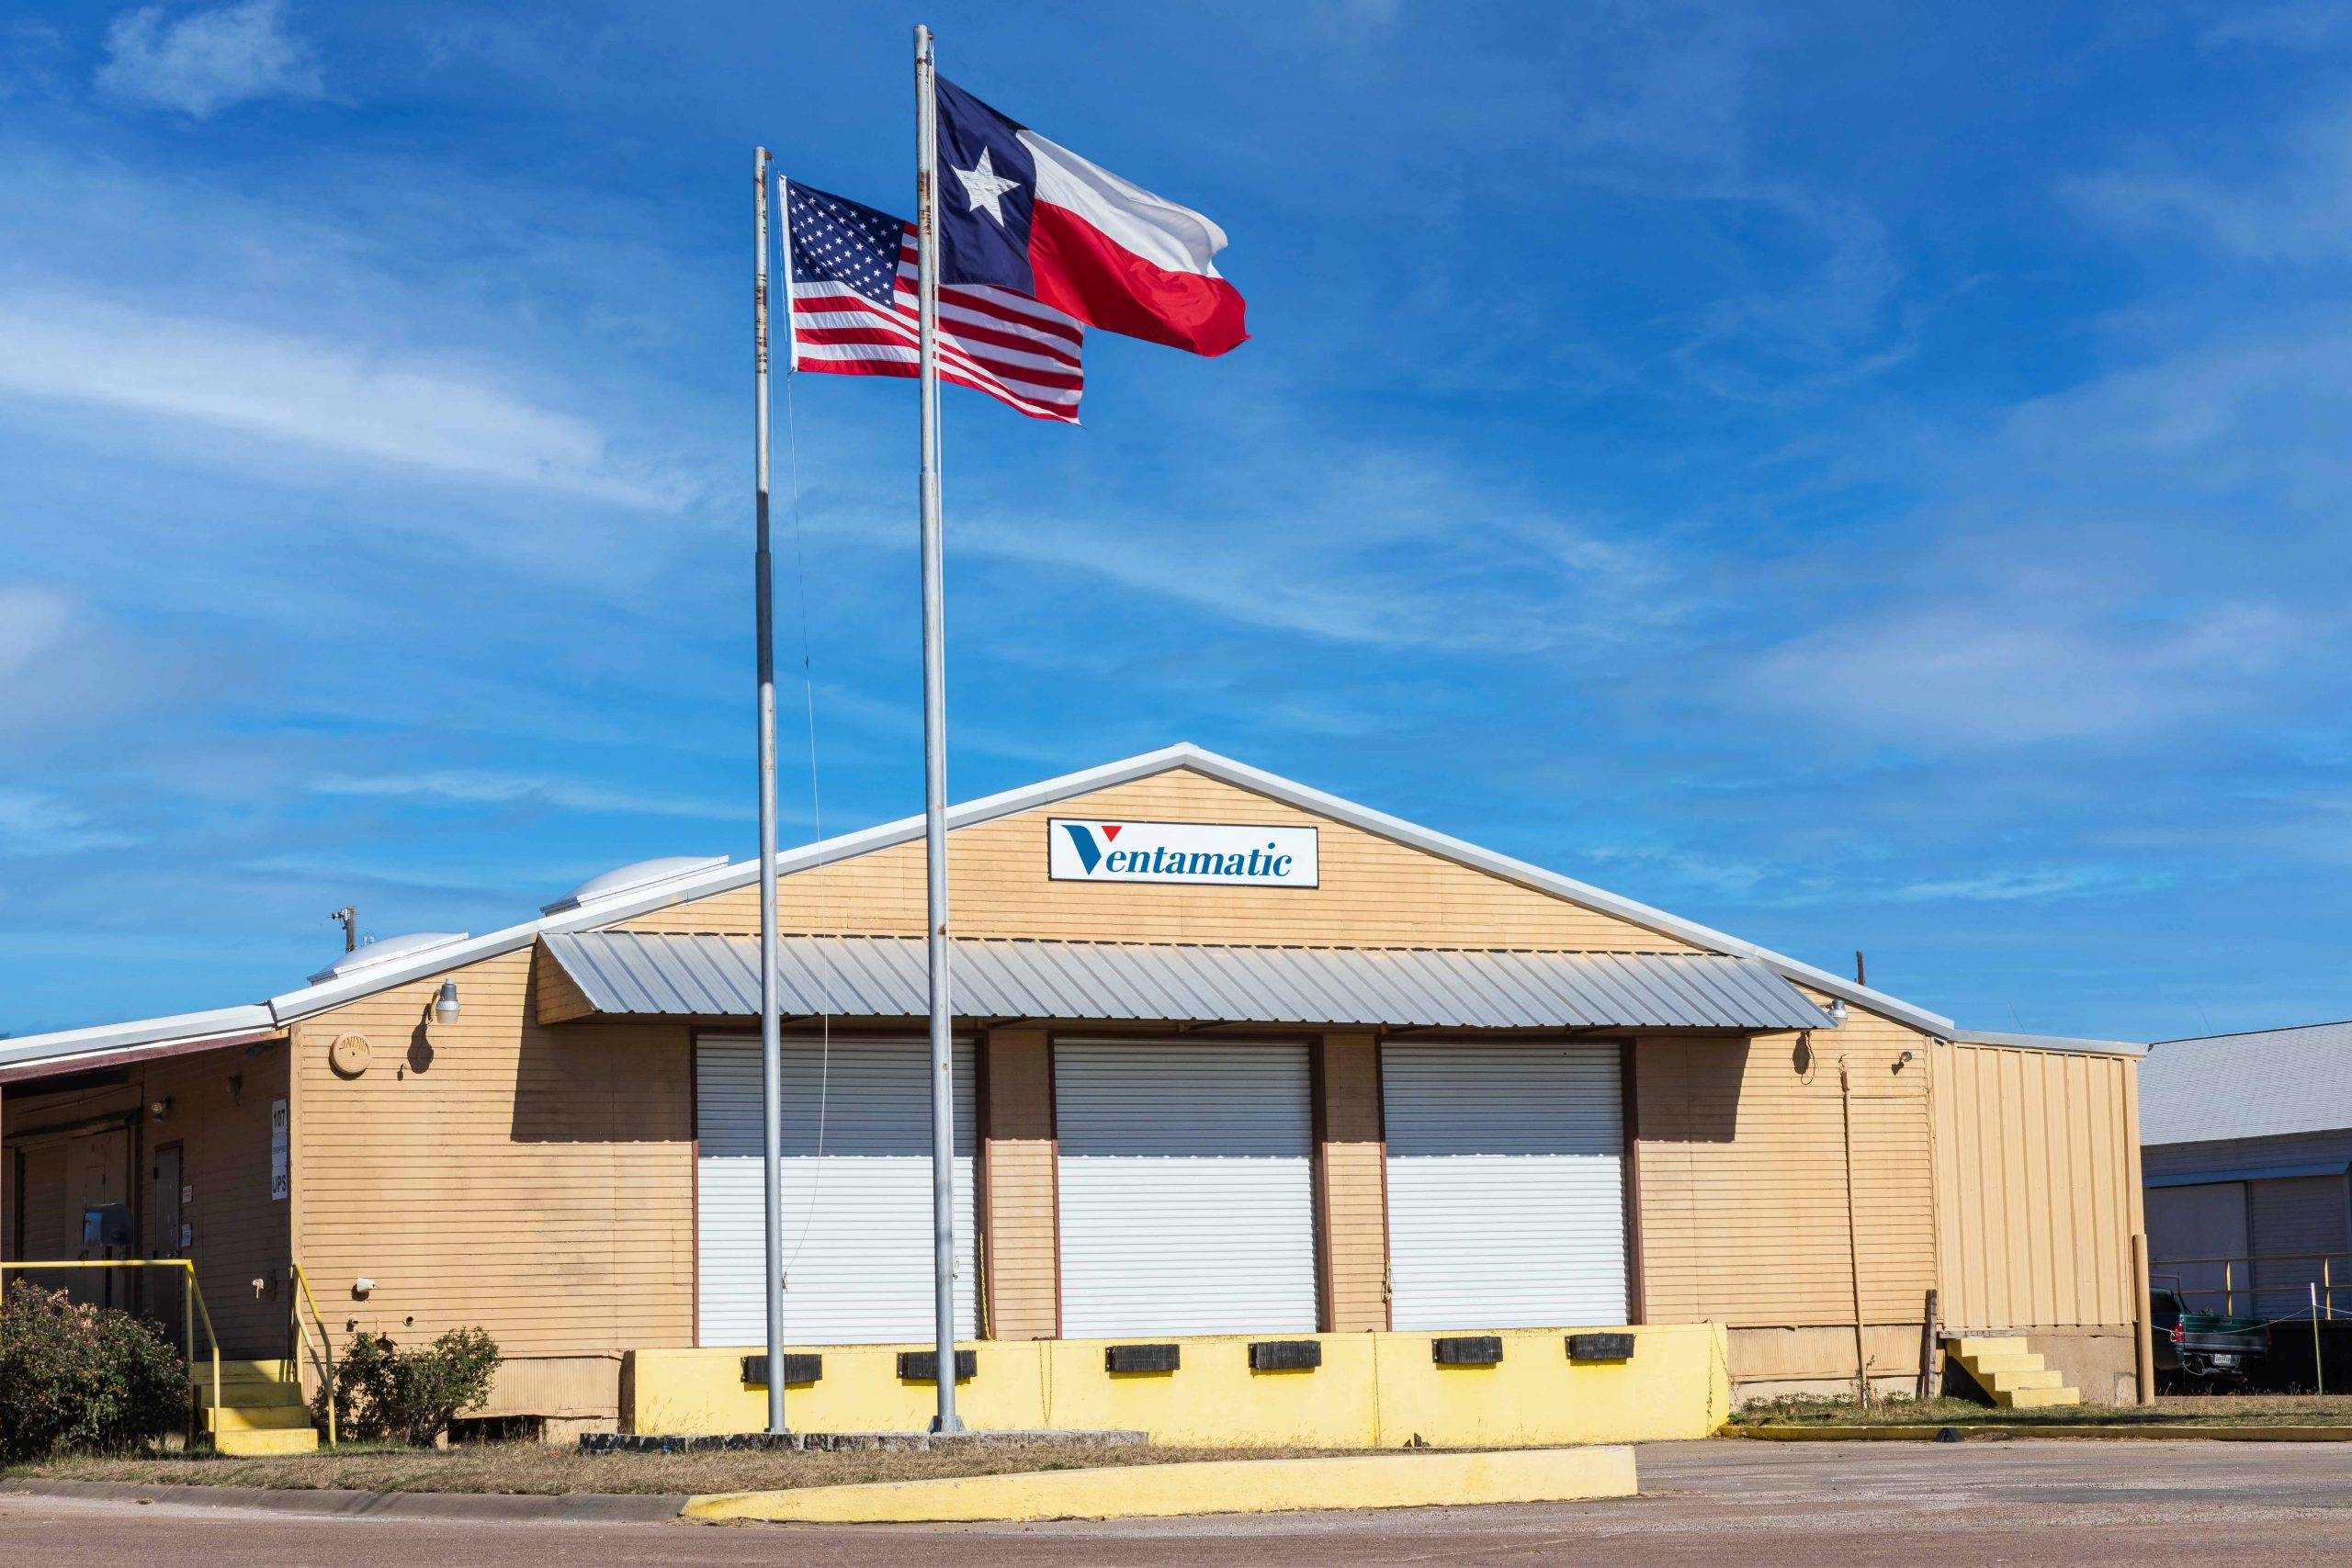 Ventamatic's shipping warehouse with US and Texas flags flying outside.